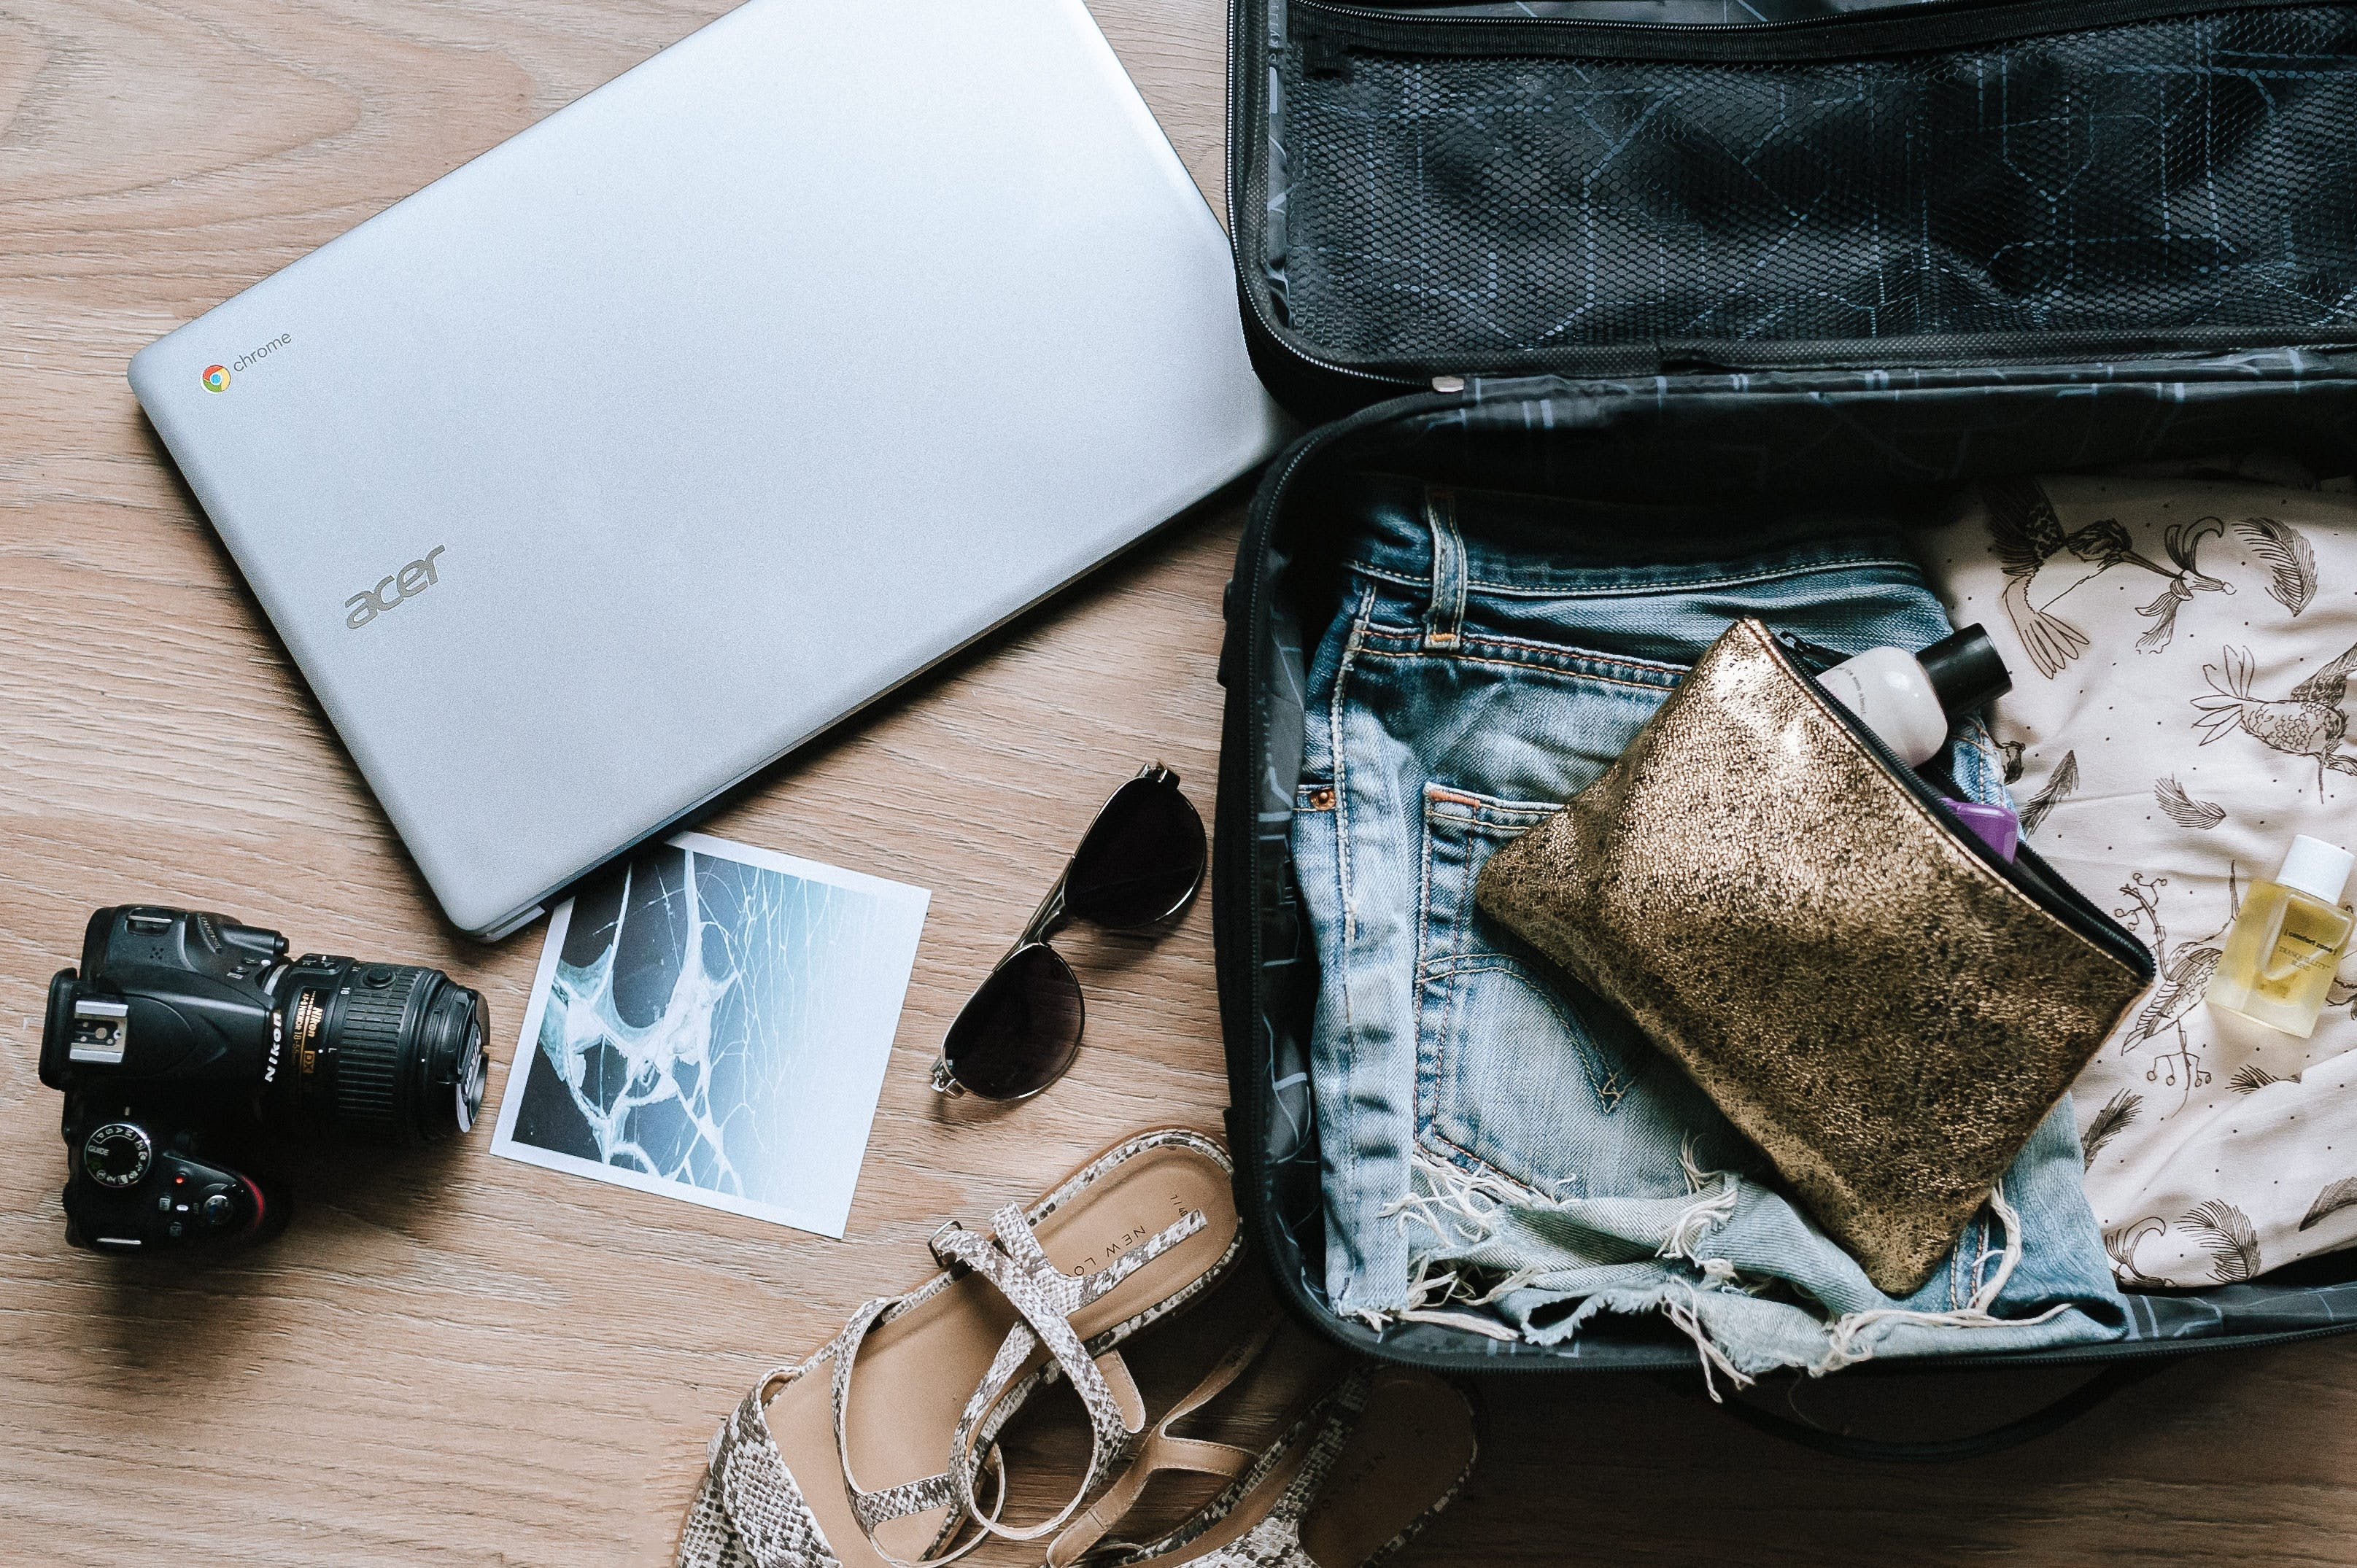 Pack your travel belongings to maximize space